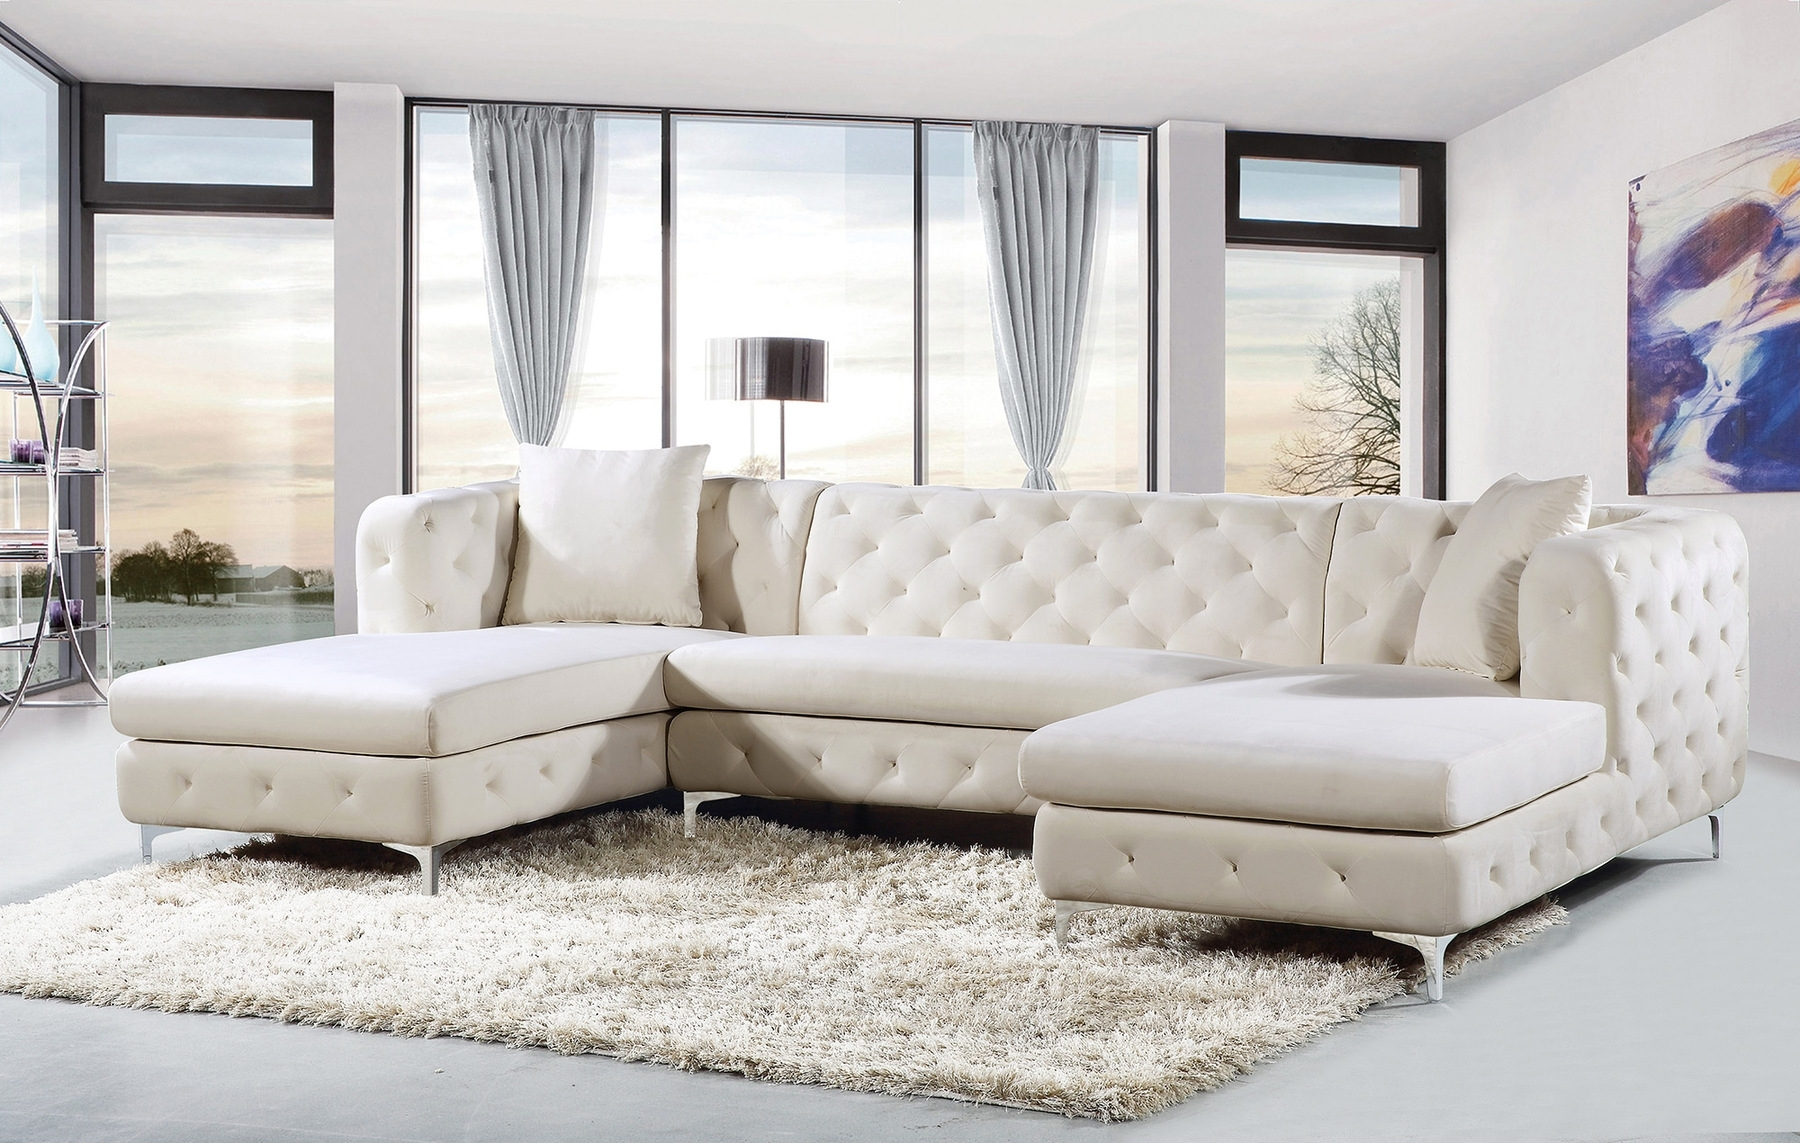 Gail Cream Sectional Sofa 664 Meridian Furniture Sectional Sofas Intended For Recent Cream Chaise Sofas (Gallery 2 of 15)